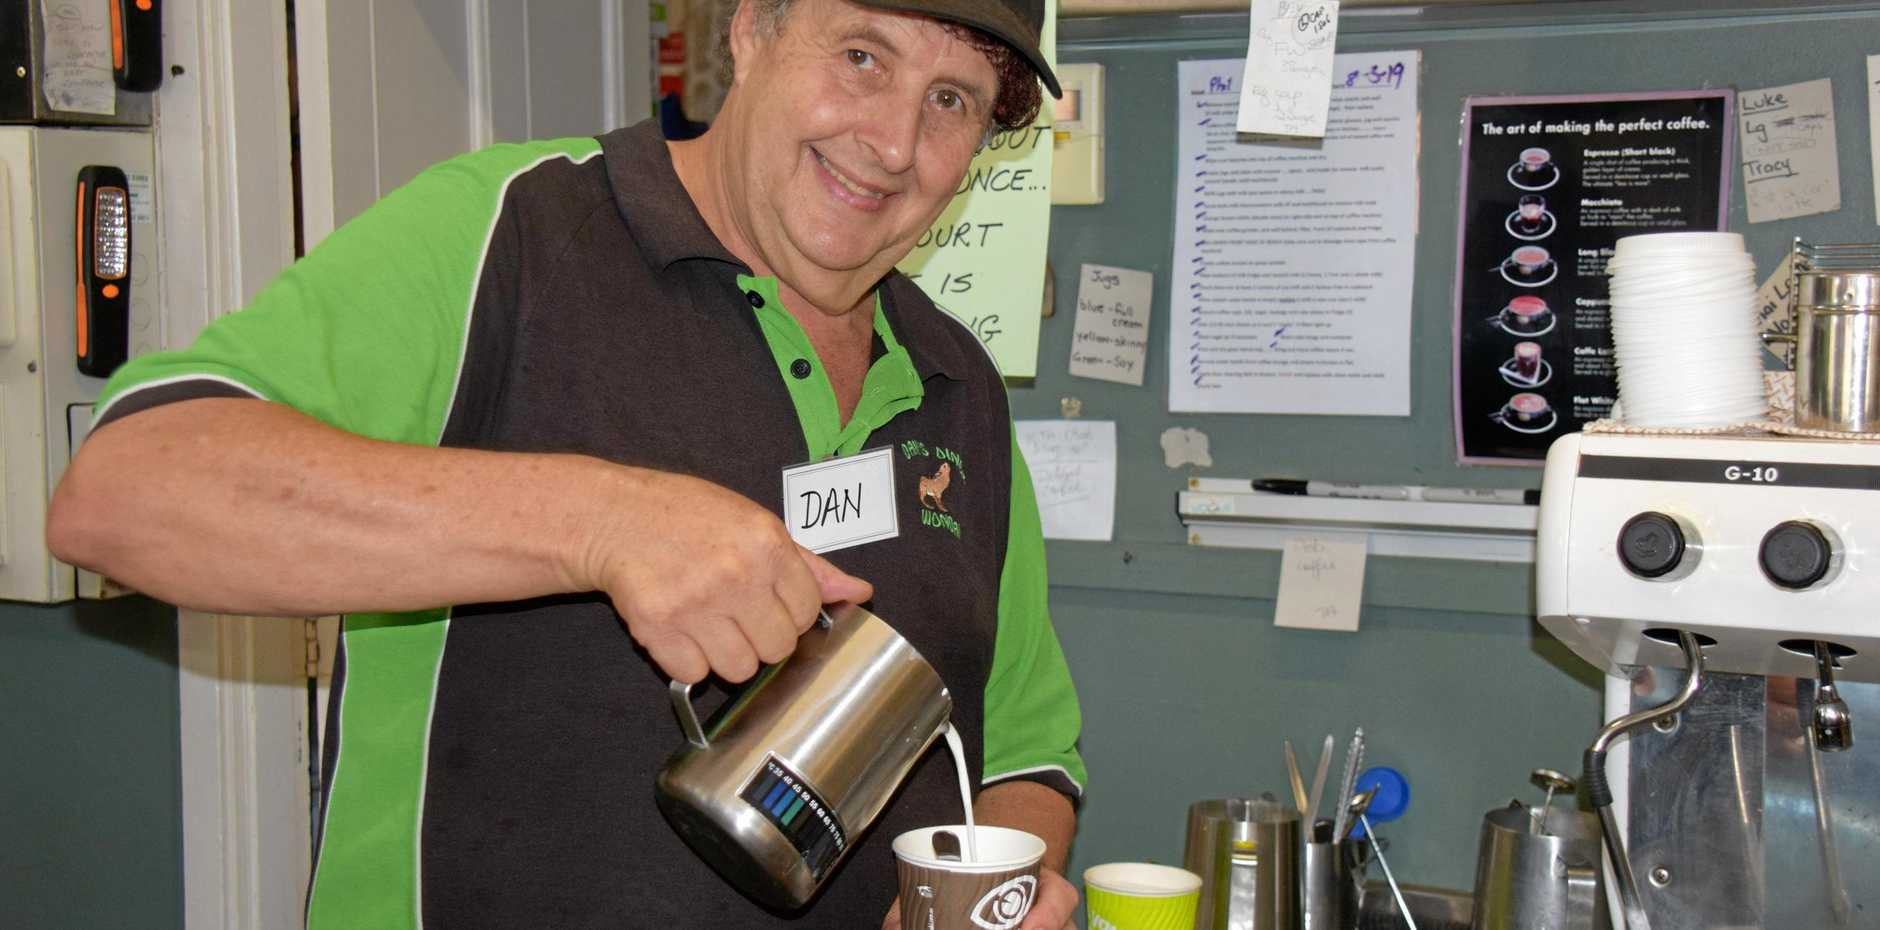 GOOD SURPRISE: When parkrun first came to Wondai, local diner owner, Dan Radunz believed it wouldn't last.